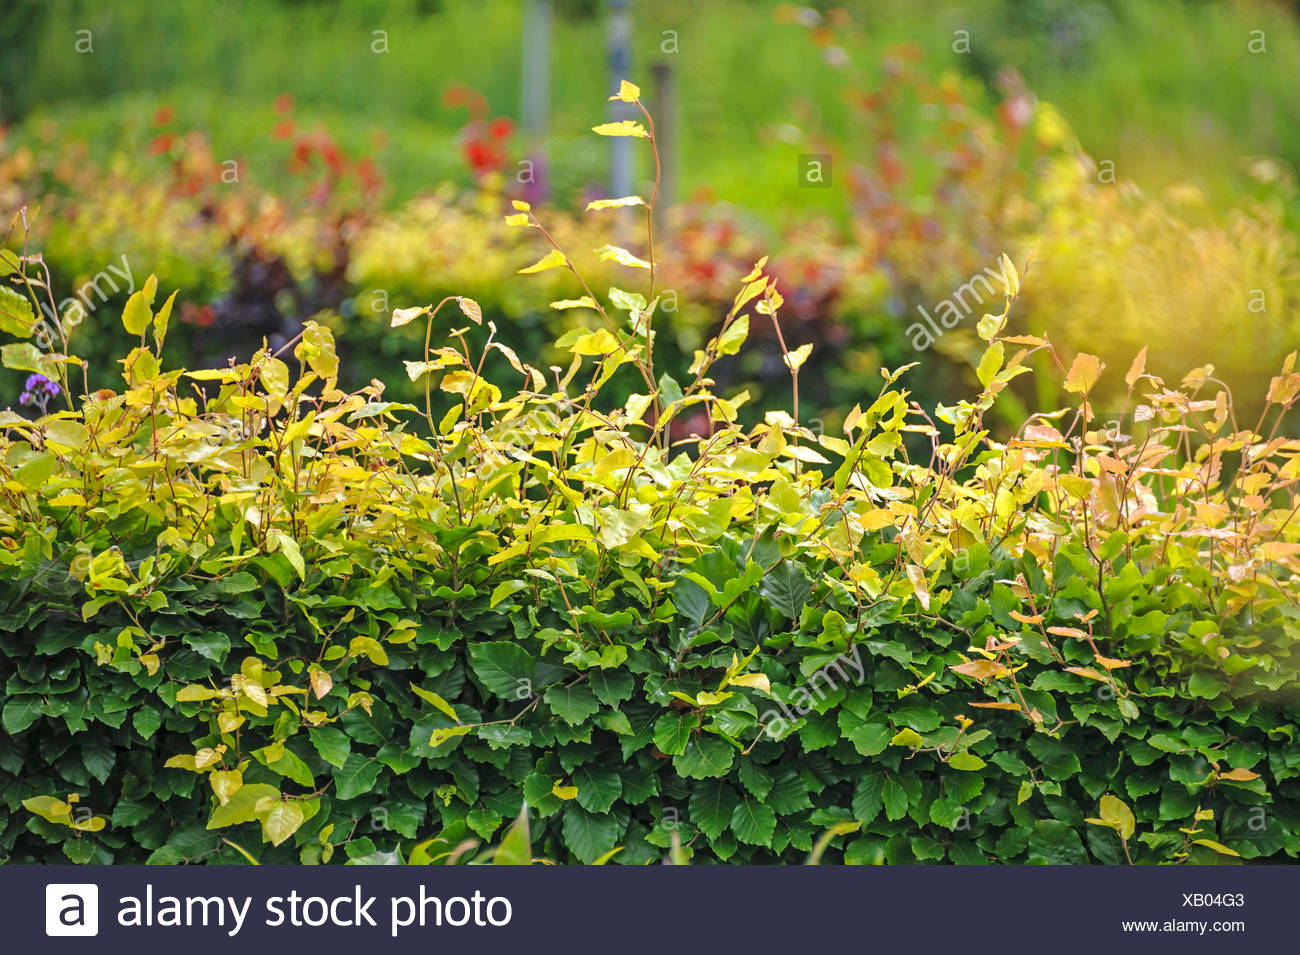 common beech (Fagus sylvatica), beech hedge, Netherlands - Stock Image